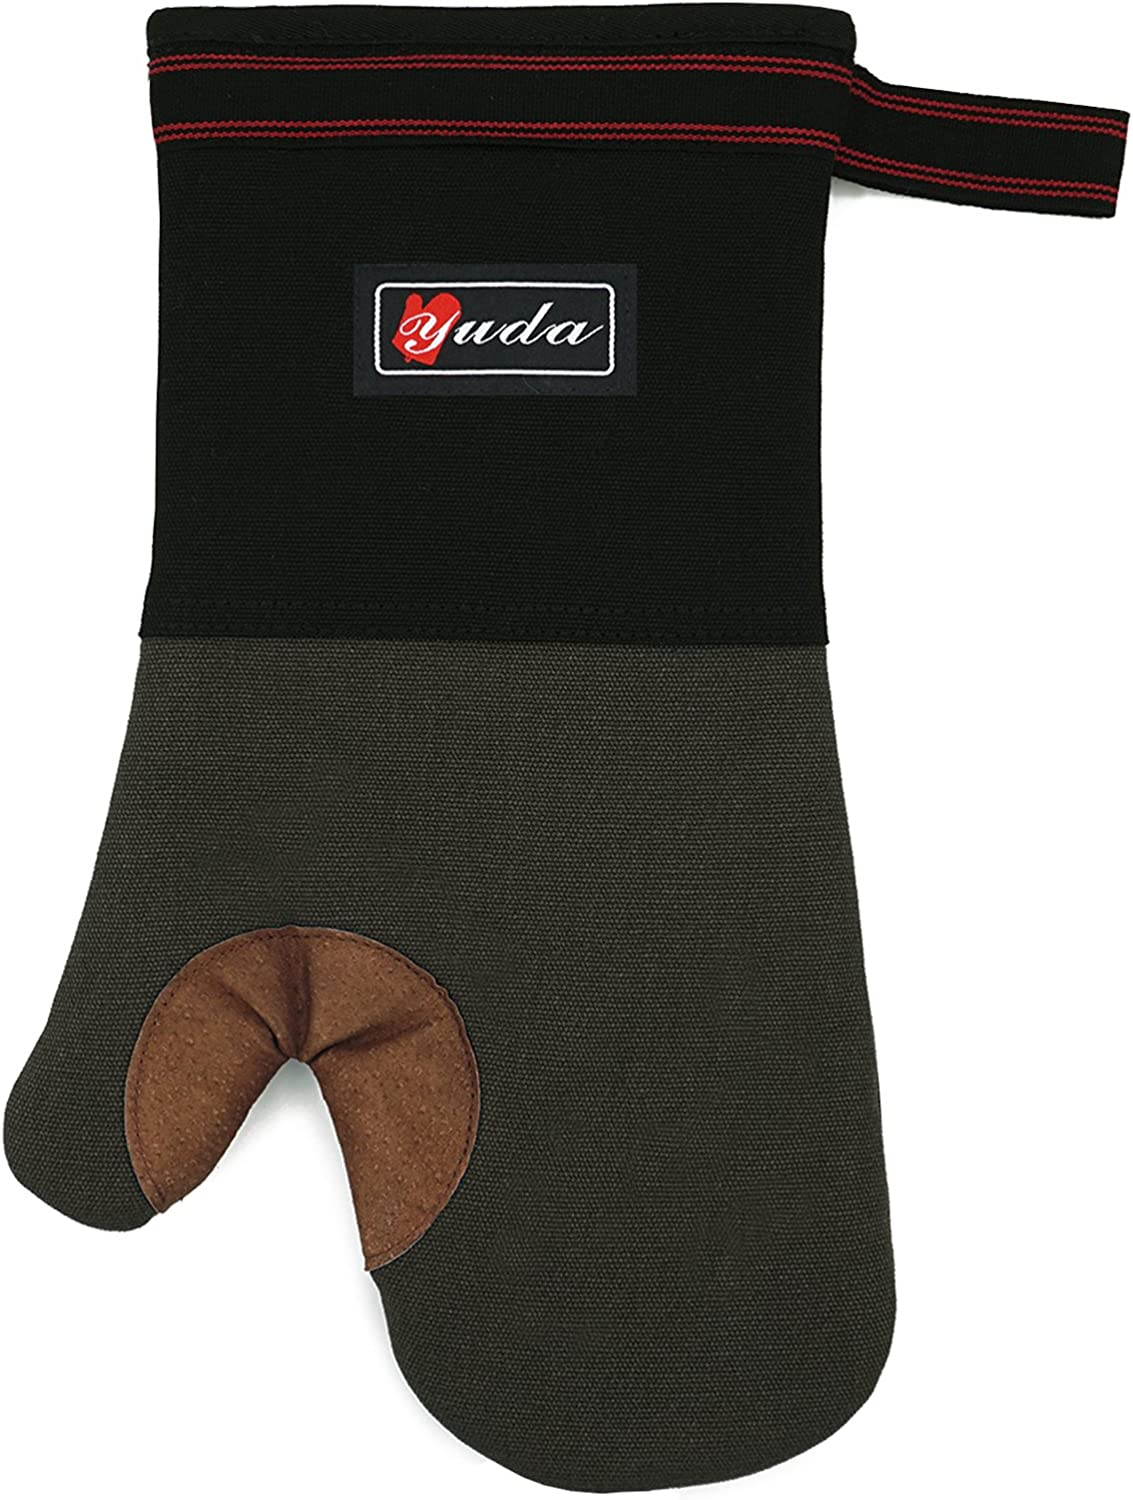 YUTAT L Oven Mitt Oven Gloves Heat Resistant BBQ Leather Long 0ven Mitt with Quilted Liner Professionally Protect Your Hand During Baking Doing BBQ or Carry Hot Pot(1 Piece)